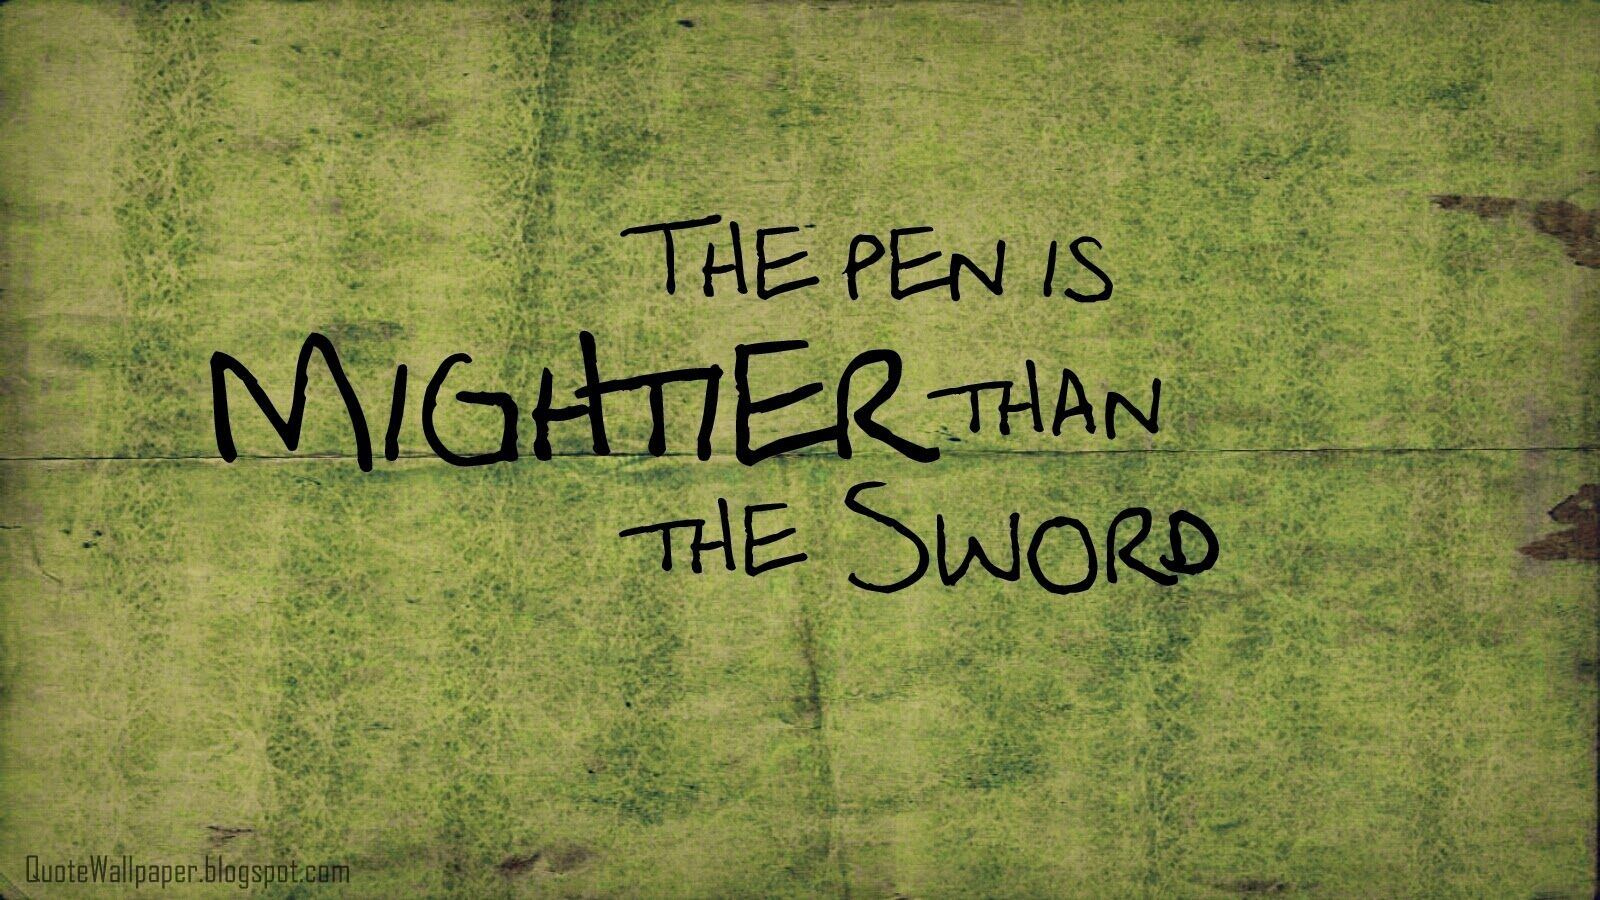 pen mightier than sword essay is the pen mightier than sword debate org